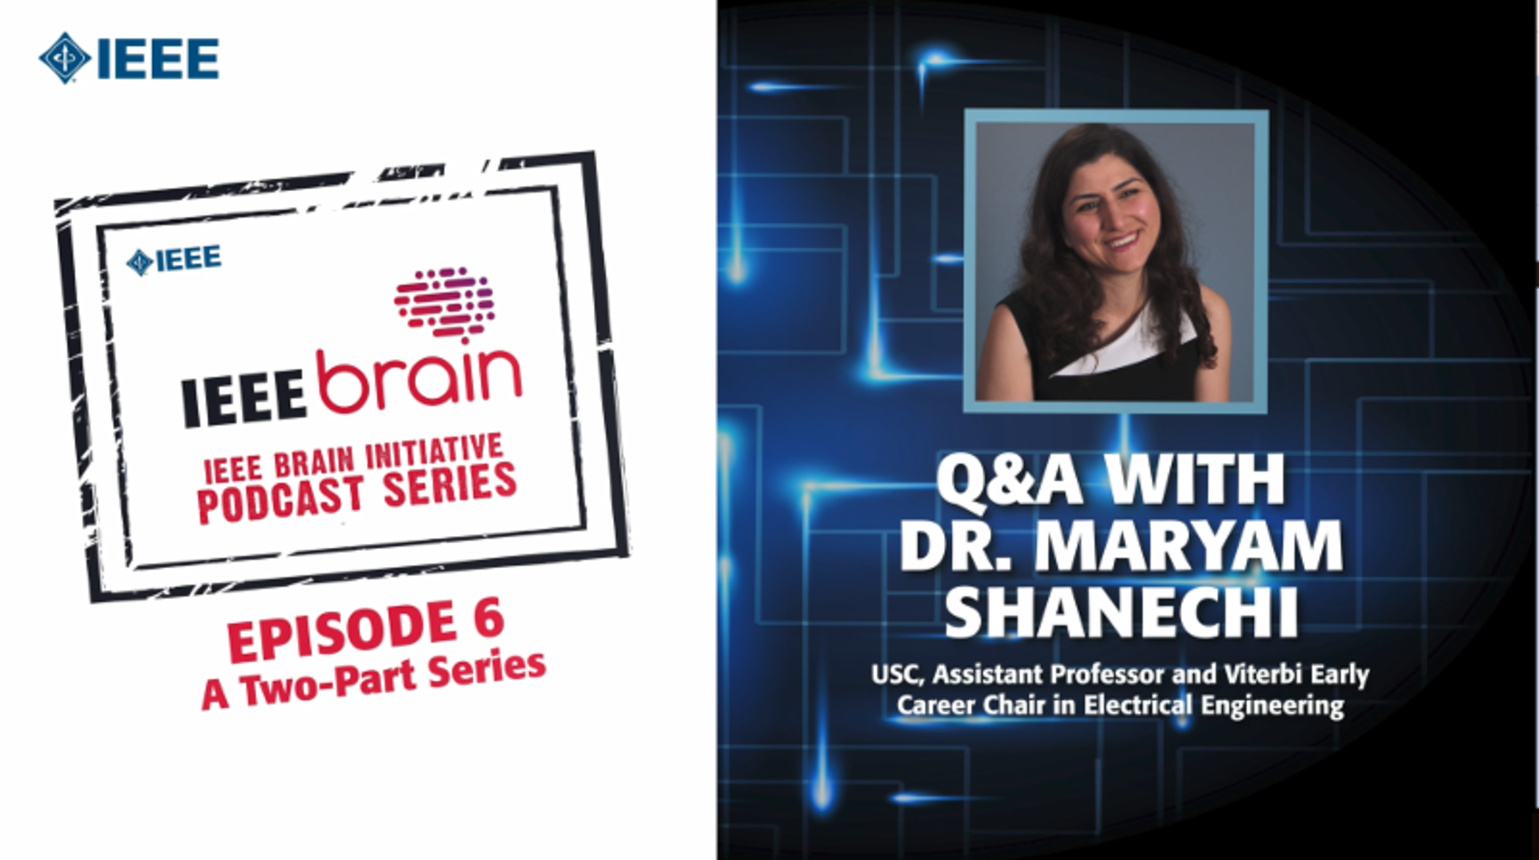 Q&A with Dr. Maryam Shanechi: IEEE Brain Podcast, Episode 6 Part 1